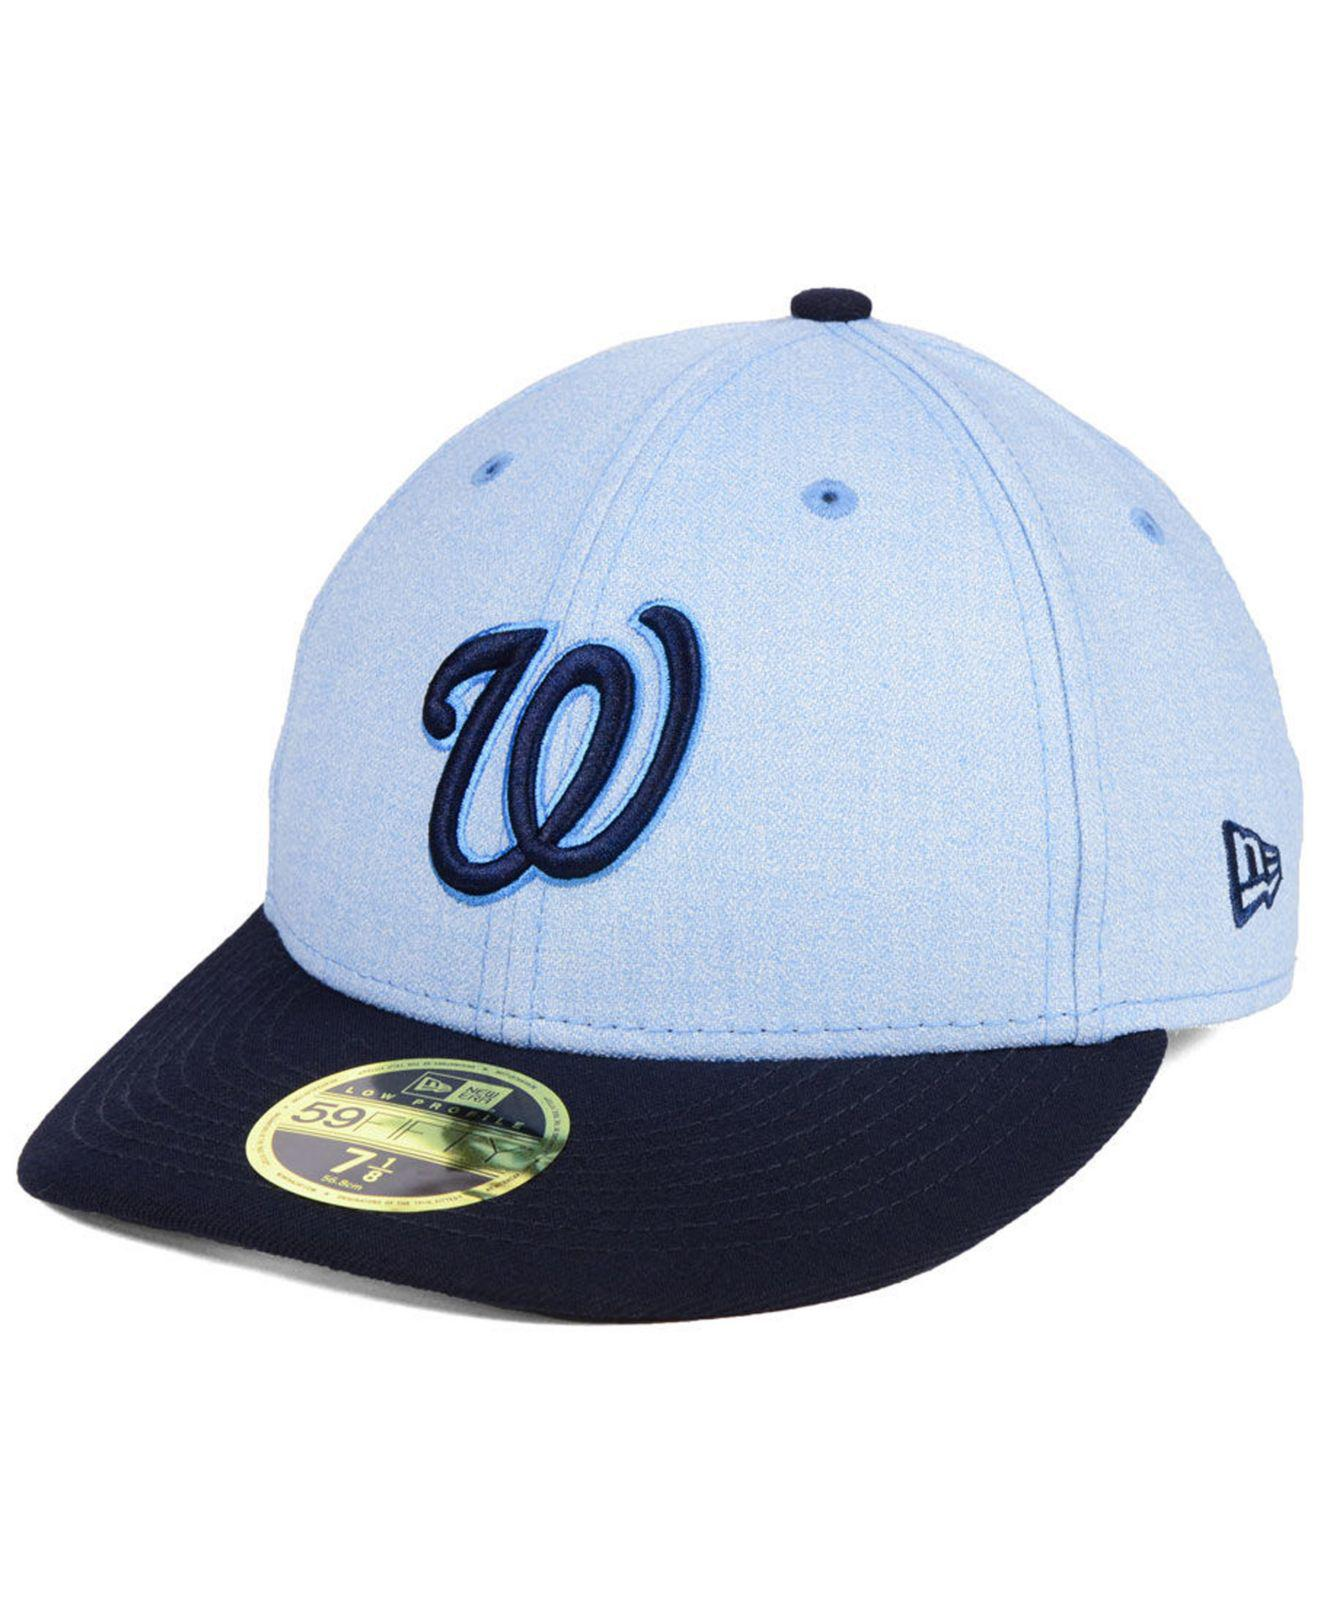 84b36af2a07 KTZ - Blue Washington Nationals Father s Day Low Profile 59fifty Cap for  Men - Lyst. View fullscreen